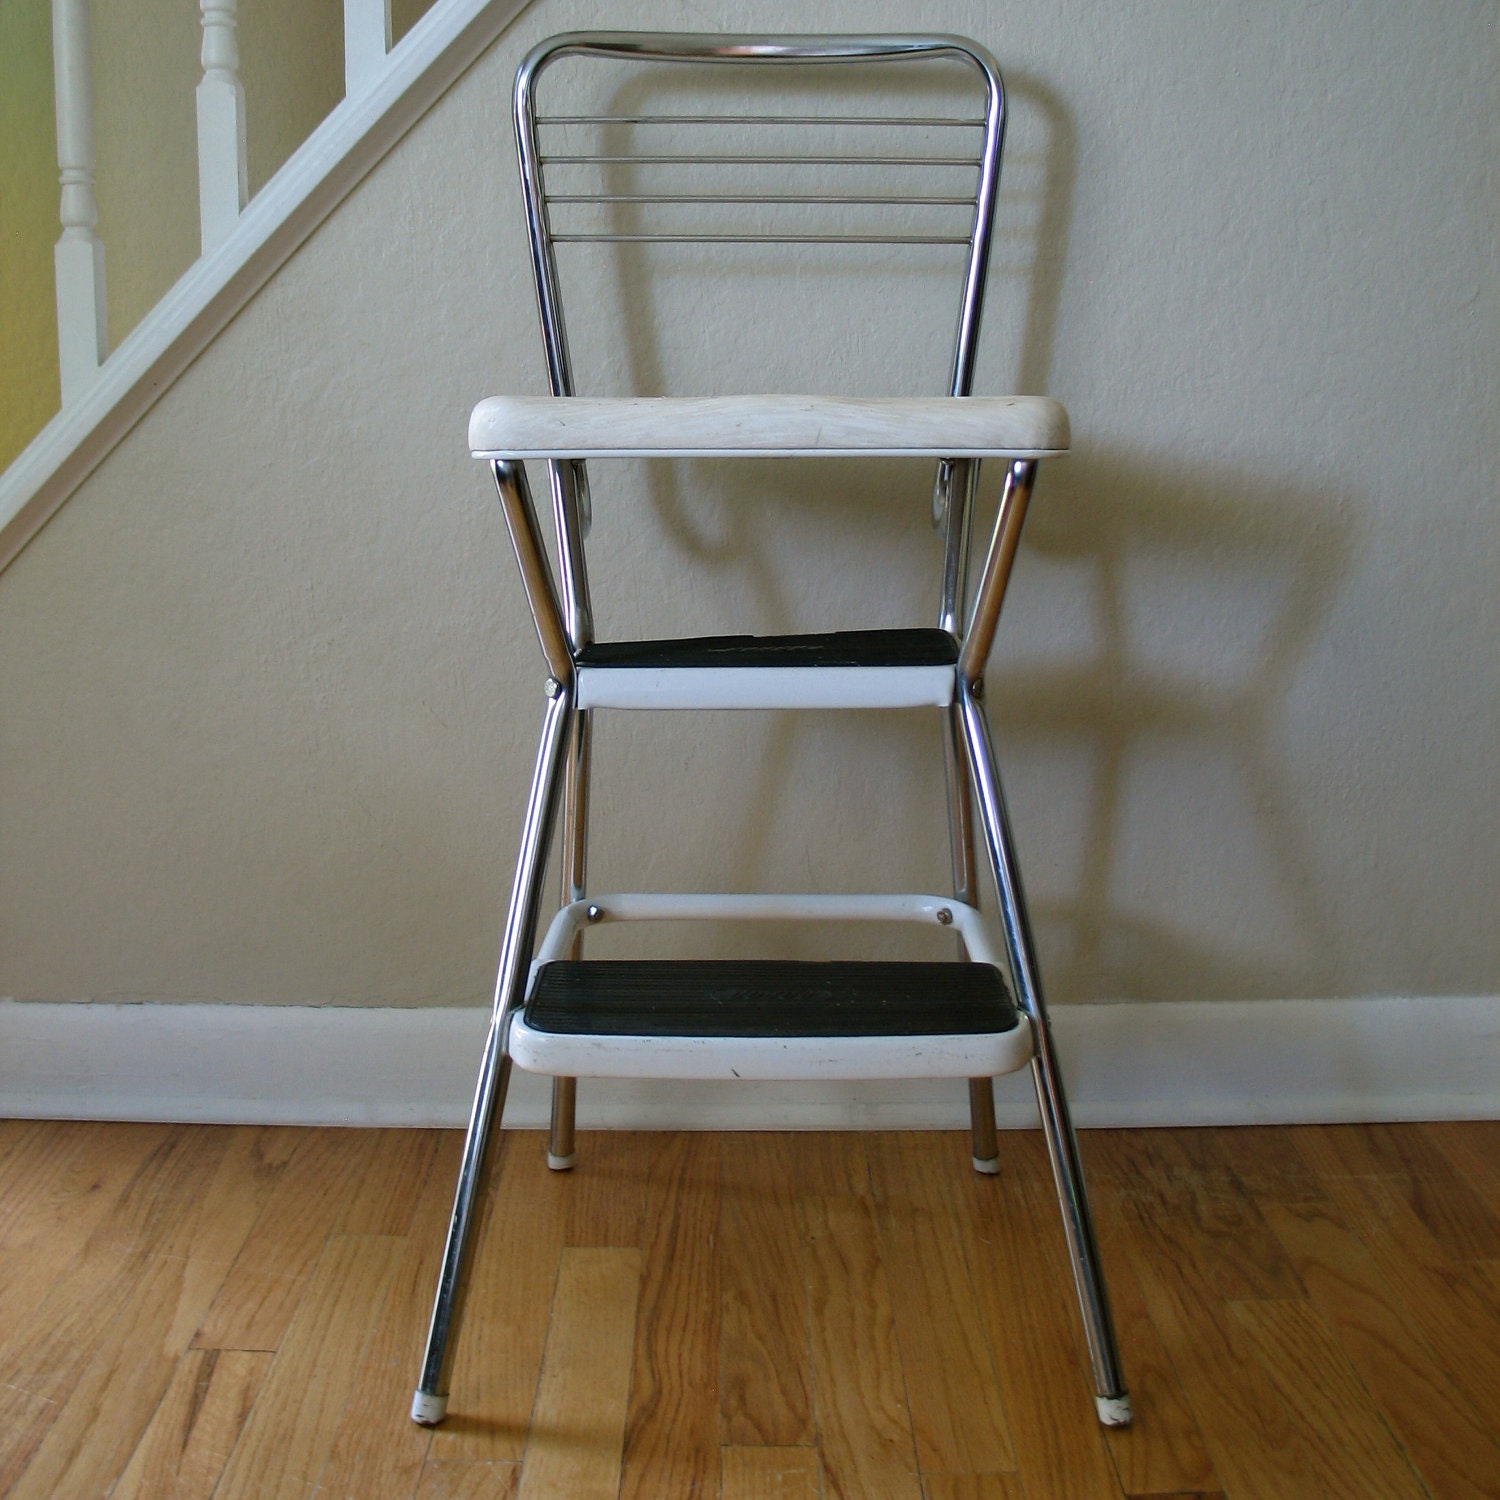 Vintage Cosco Chair Step Stool